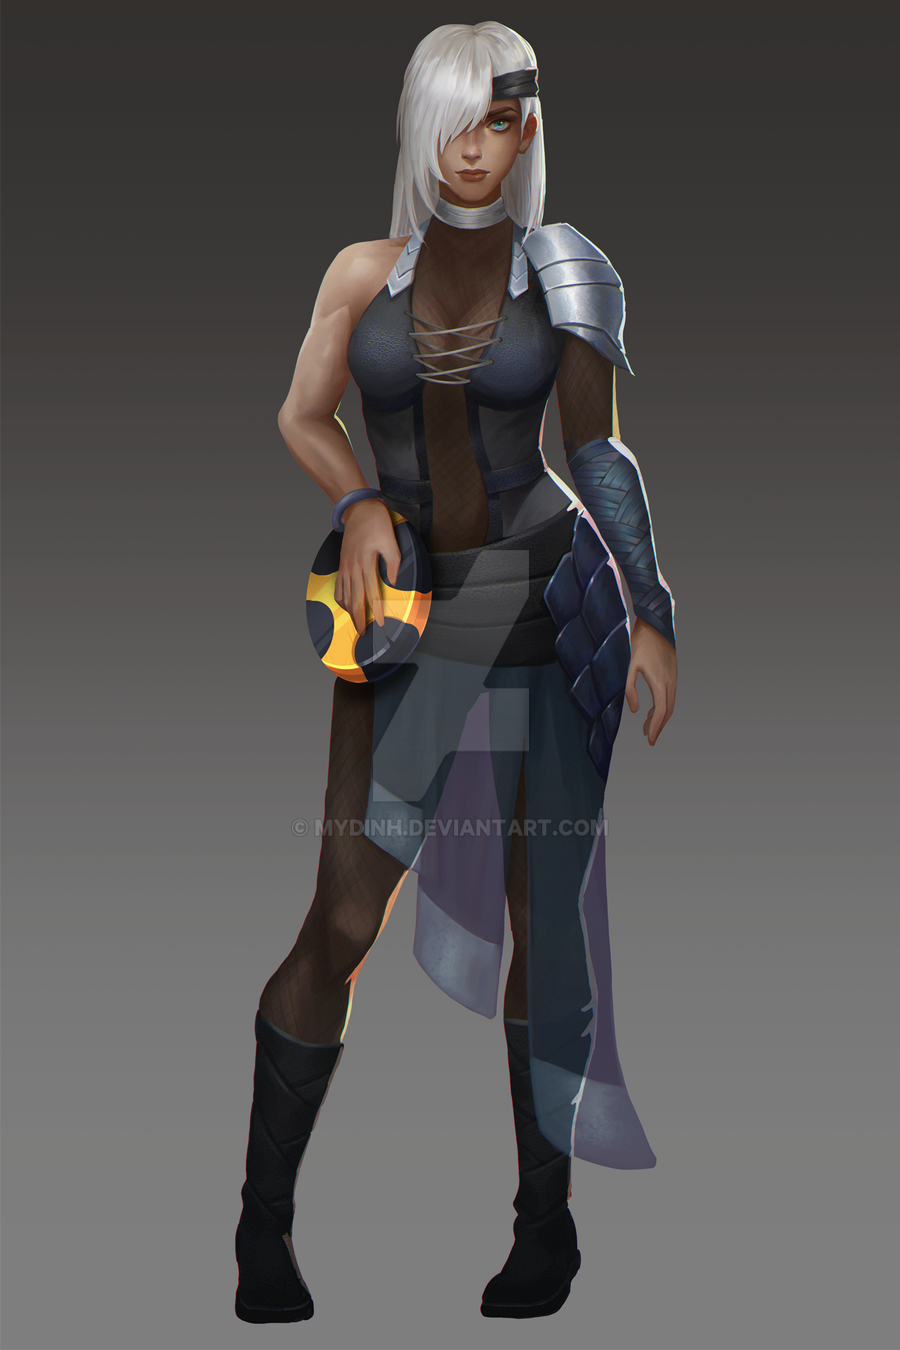 Commission full body character